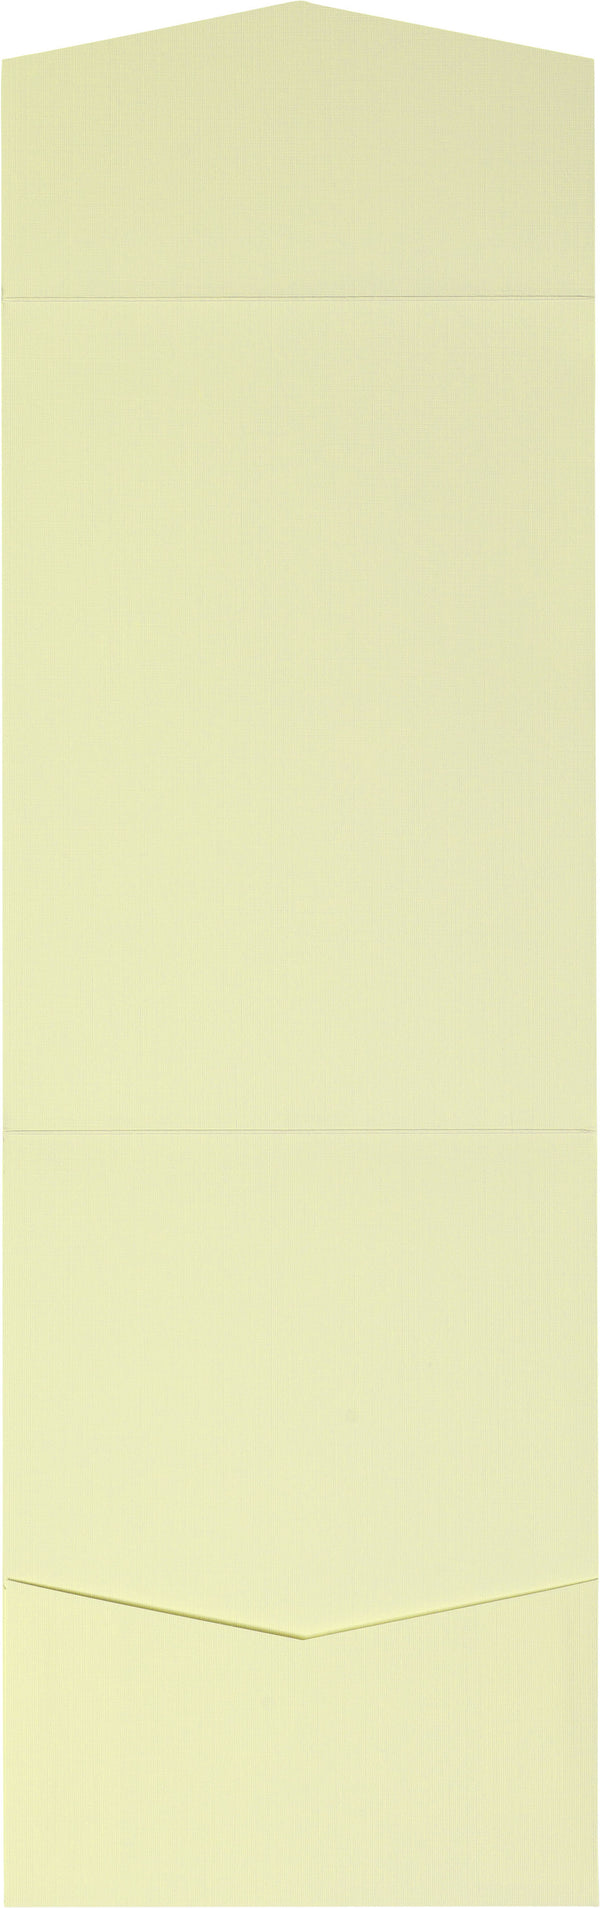 Classic Ivory Linen Pocket Invitation Card, A7 Cascade